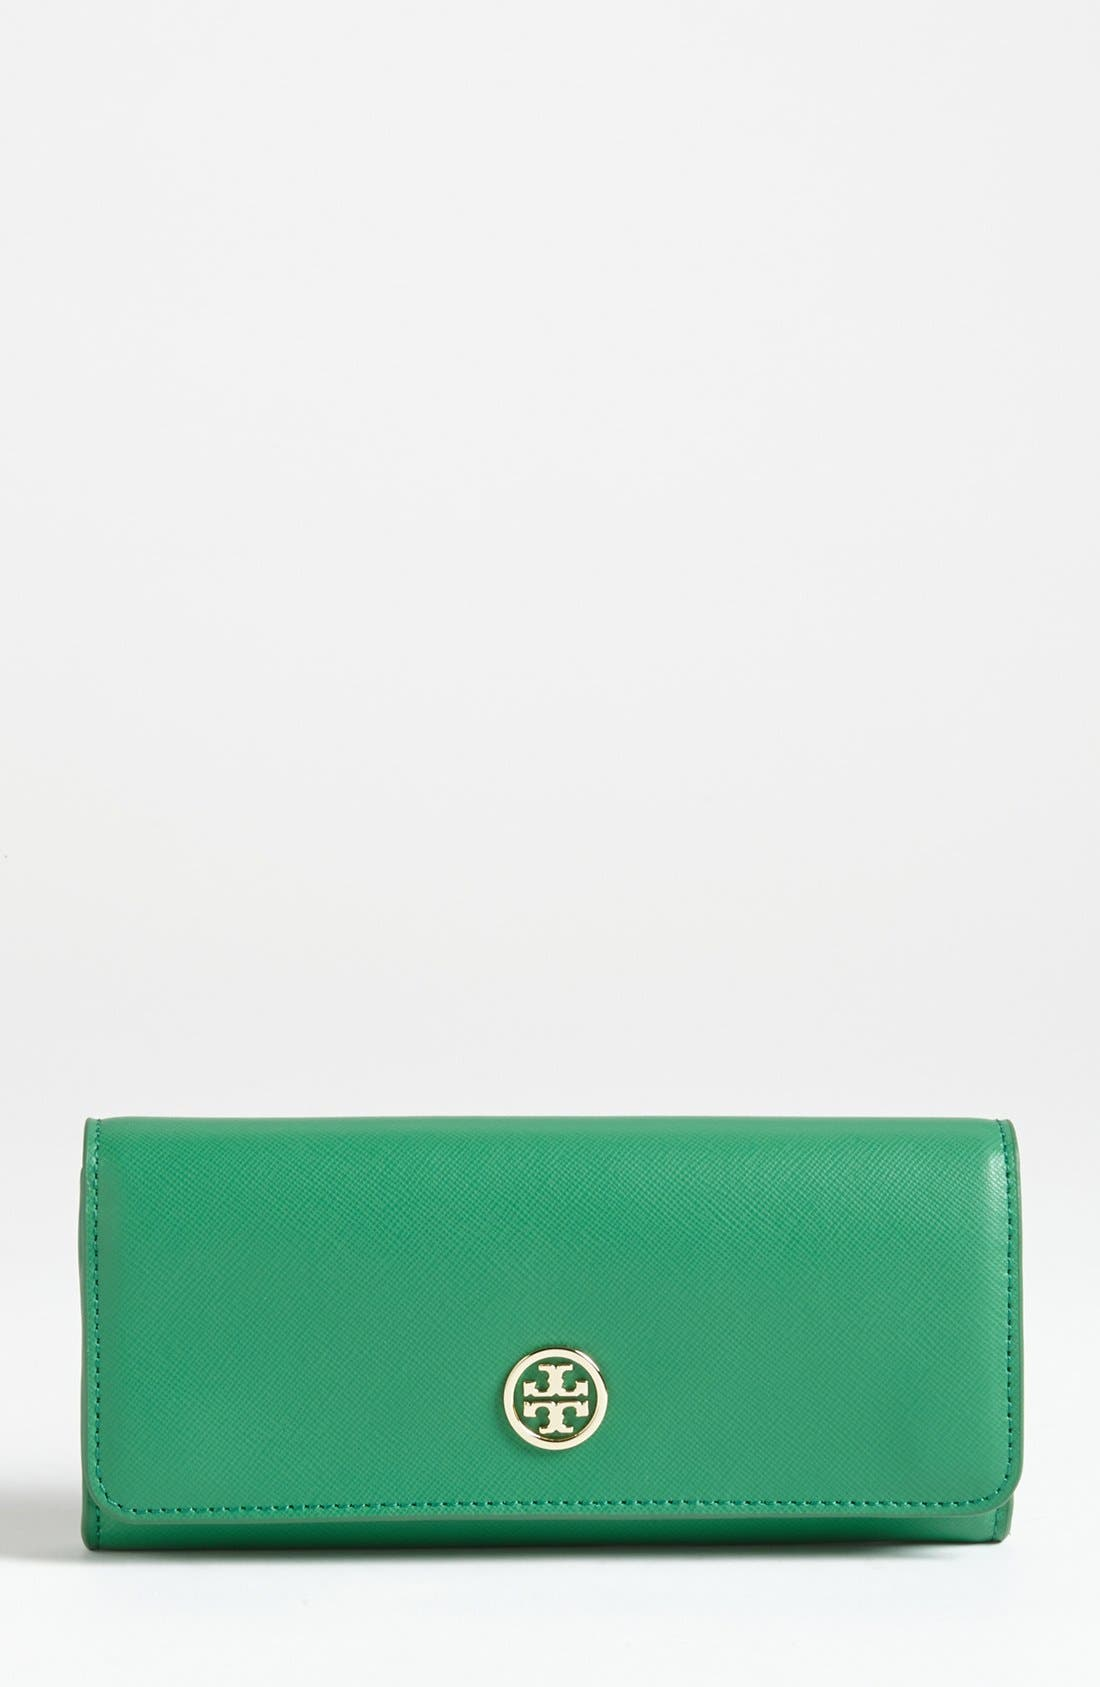 Main Image - Tory Burch 'Robinson' Saffiano Leather Wallet